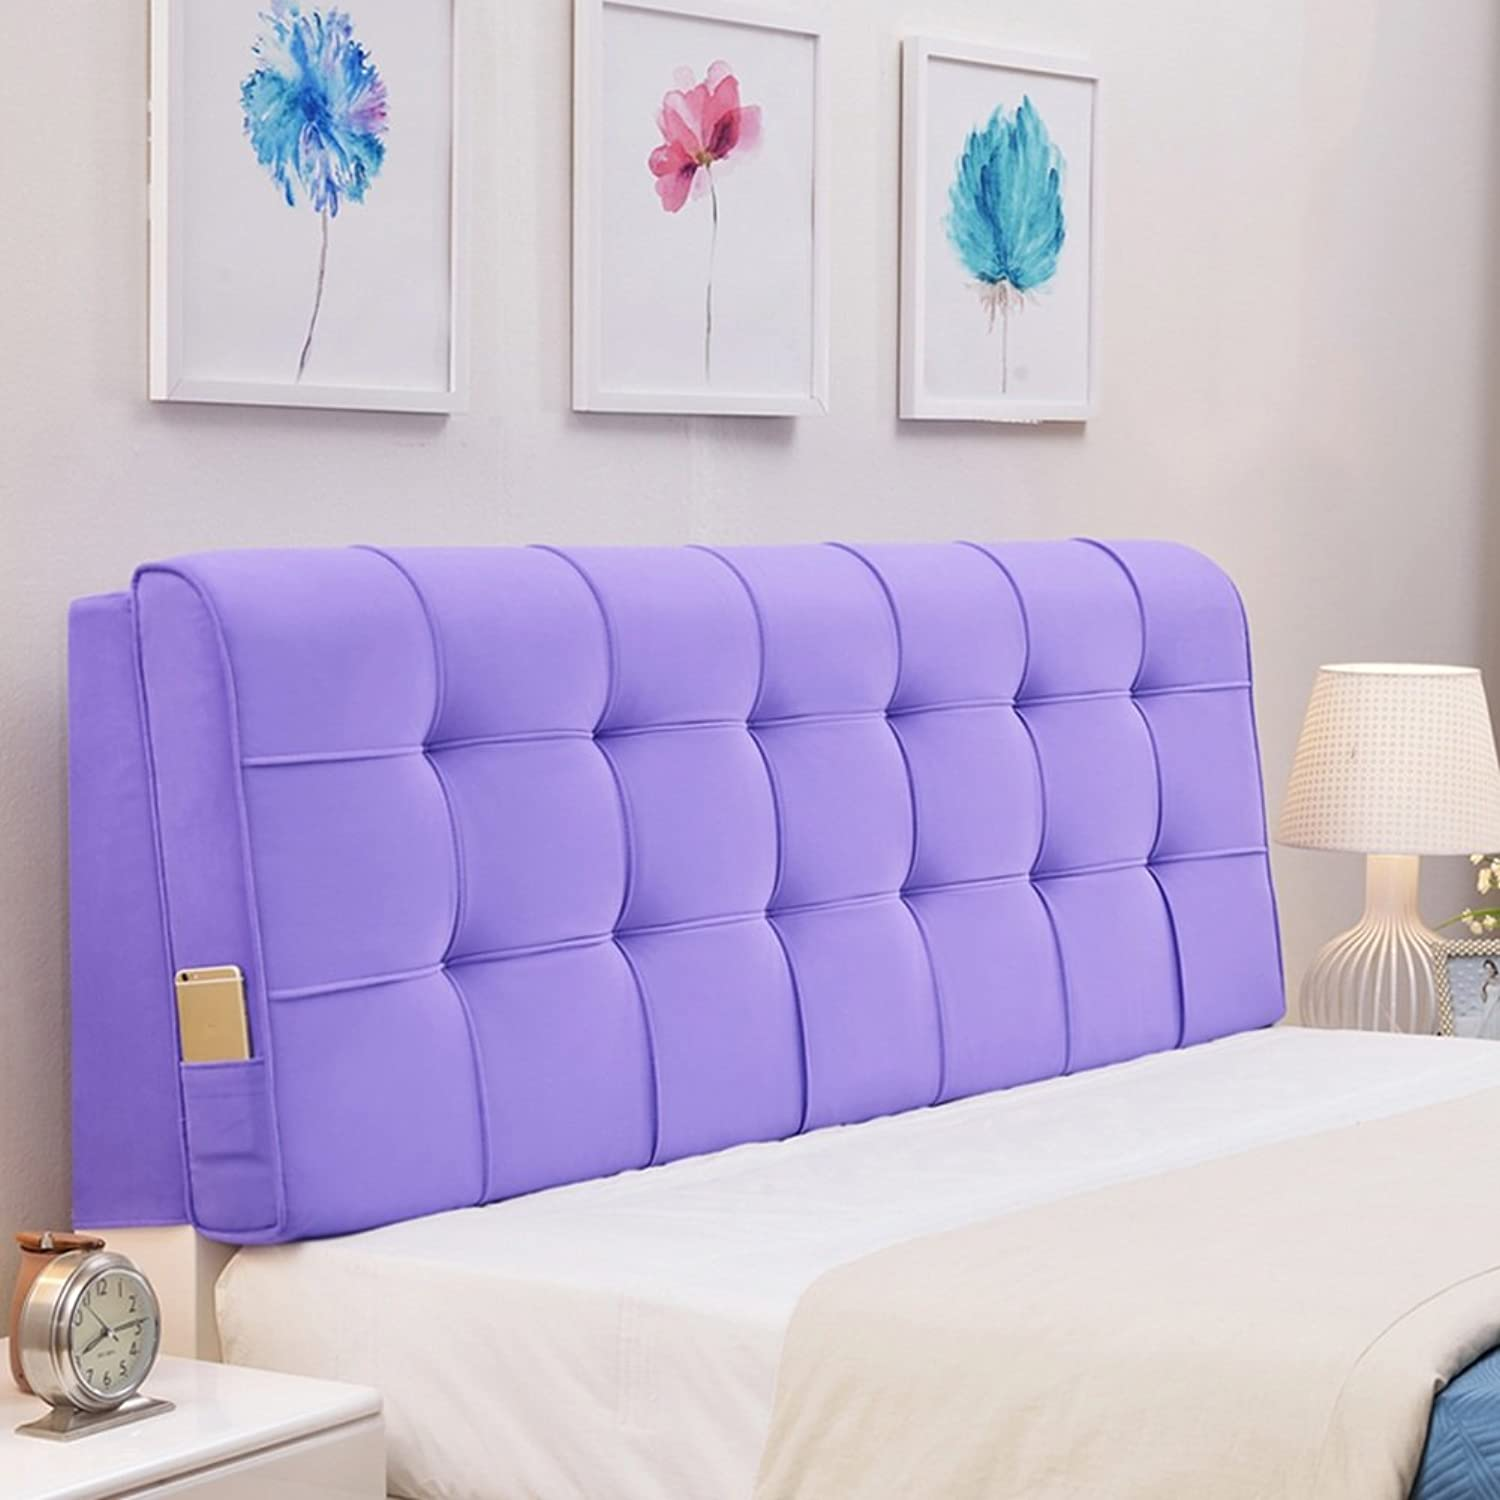 WENZHE Upholstered Fabric Headboard Bedside Cushion Pads Cover Bed Wedges Backrest Waist Pad Cloth Art Large Back Multifunction Soft Case, Washable, There Are Headboards, 7 colors, 8 Sizes ( color   4  , Size   With headboard-120cm )